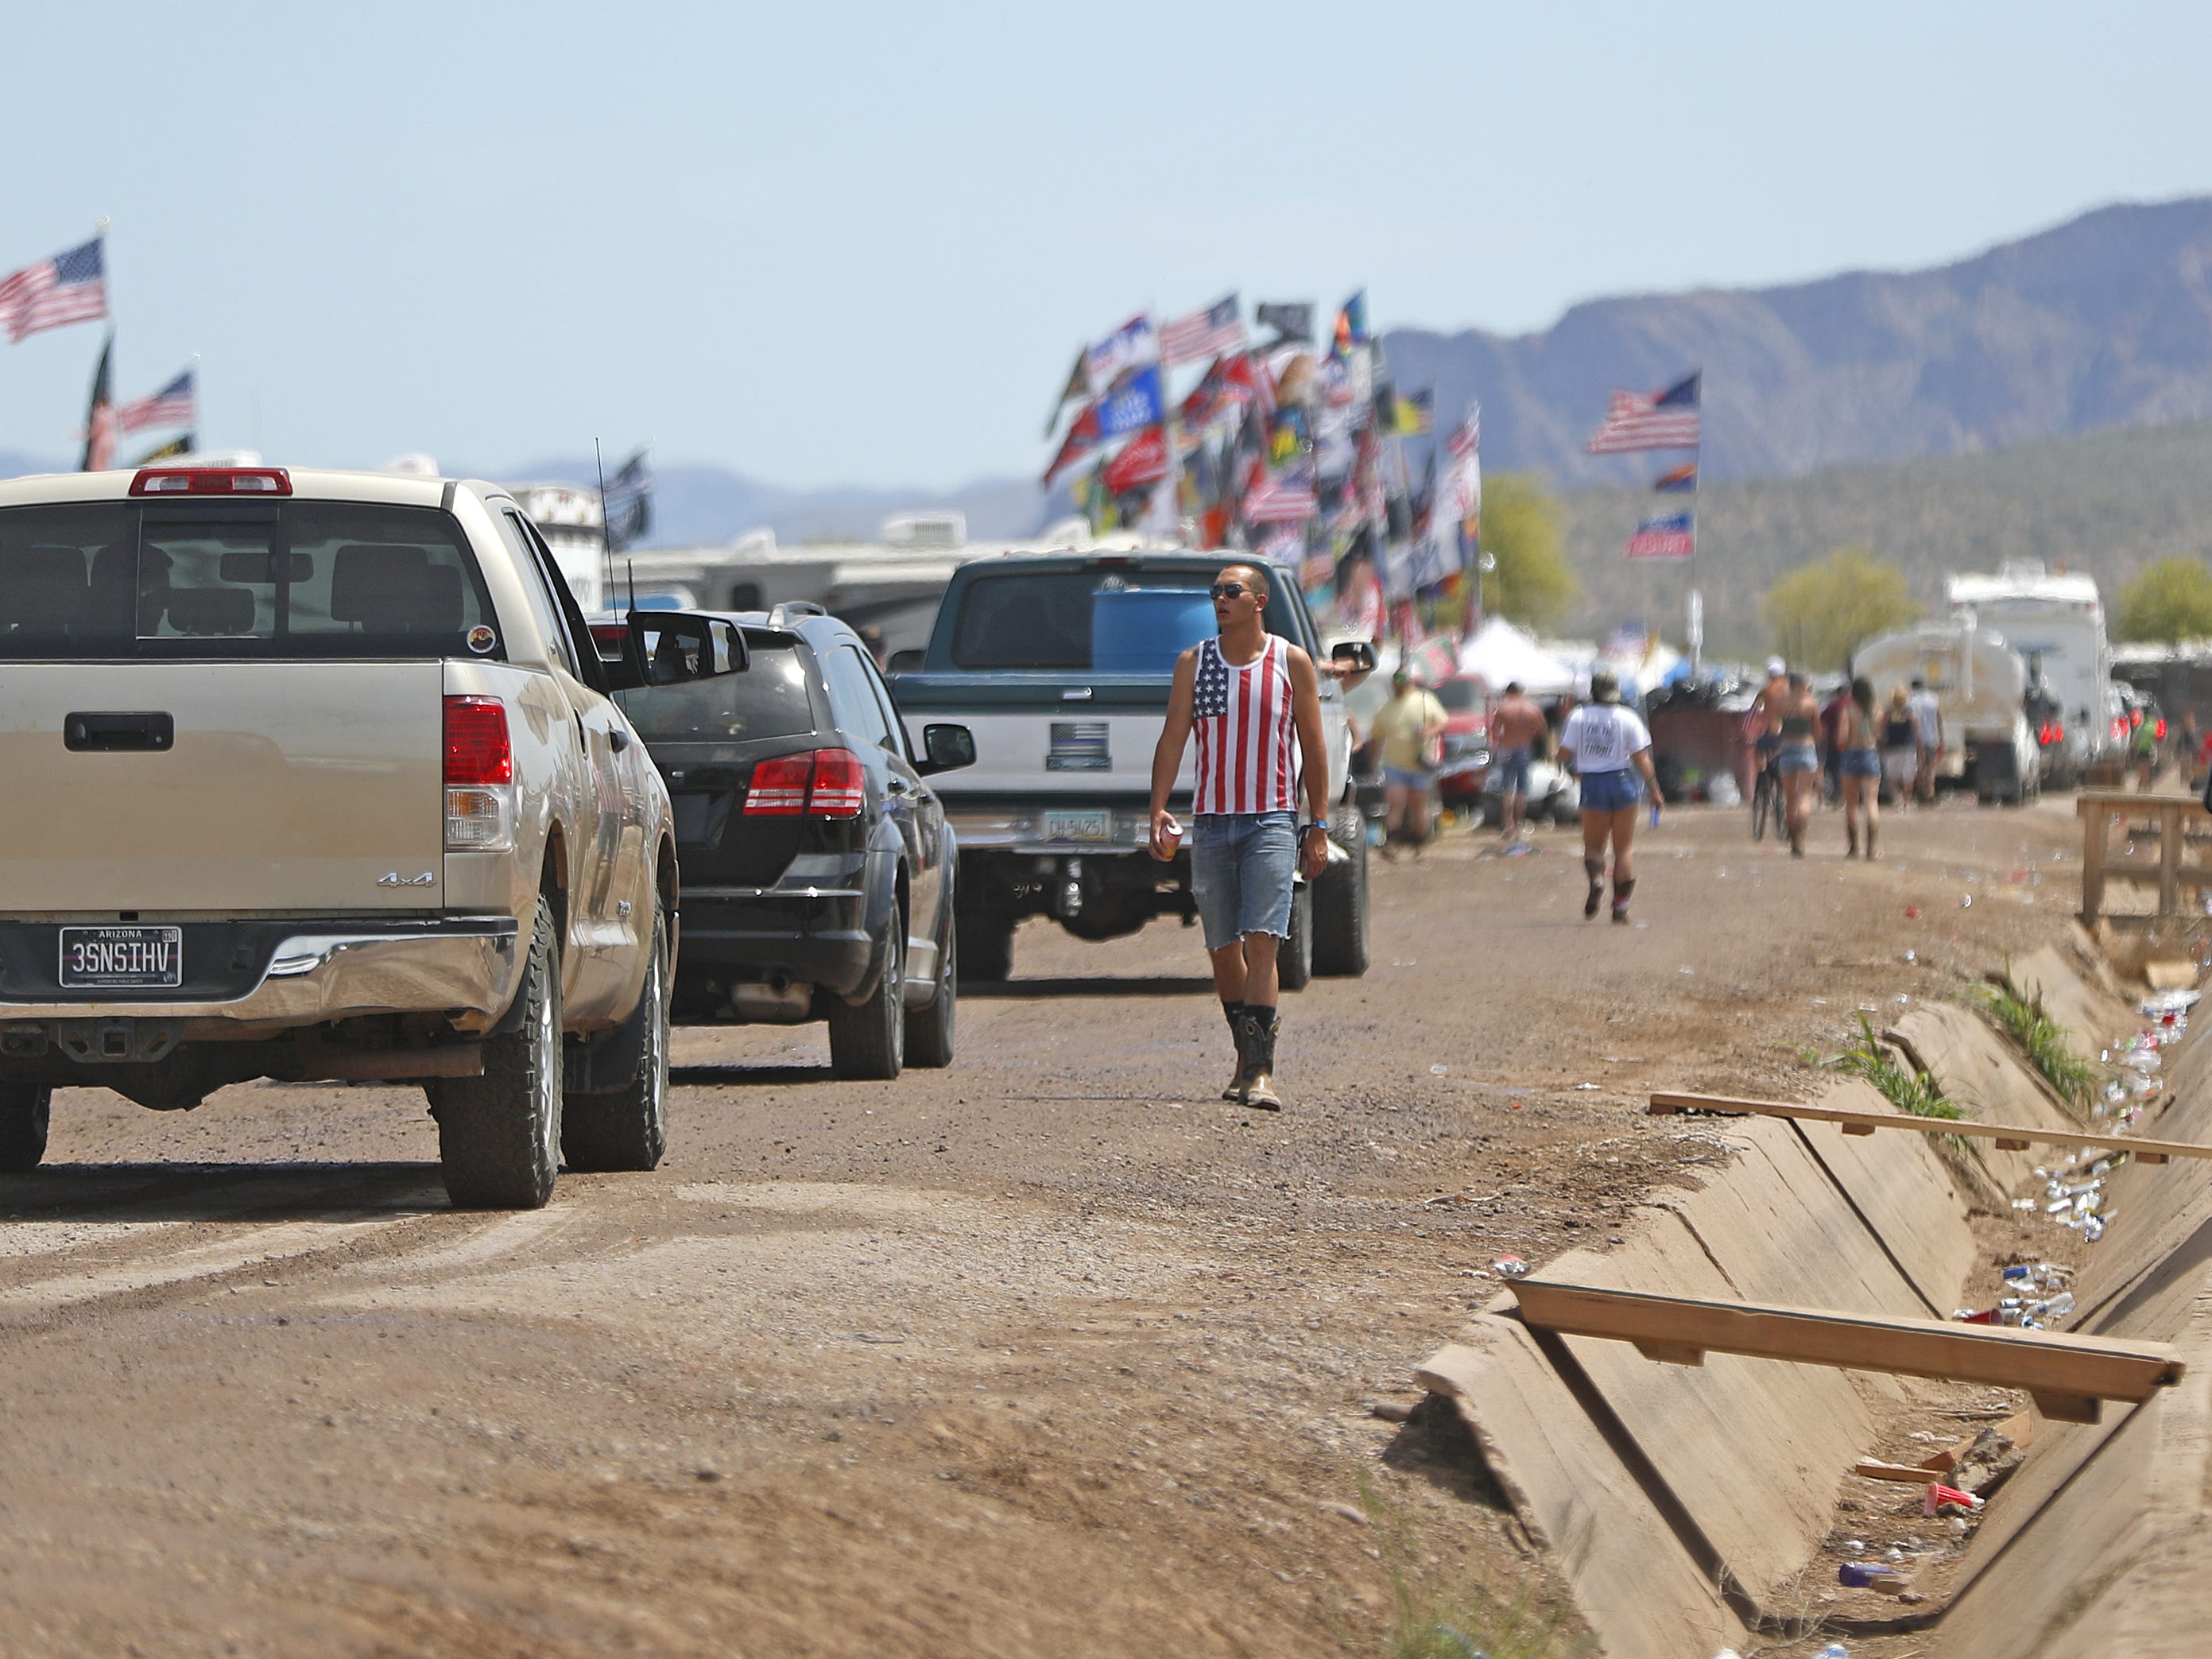 A line backs up as trucks and campers begin to exit in the morning during Country Thunder in Florence, Ariz. on Sunday, April 14, 2019.